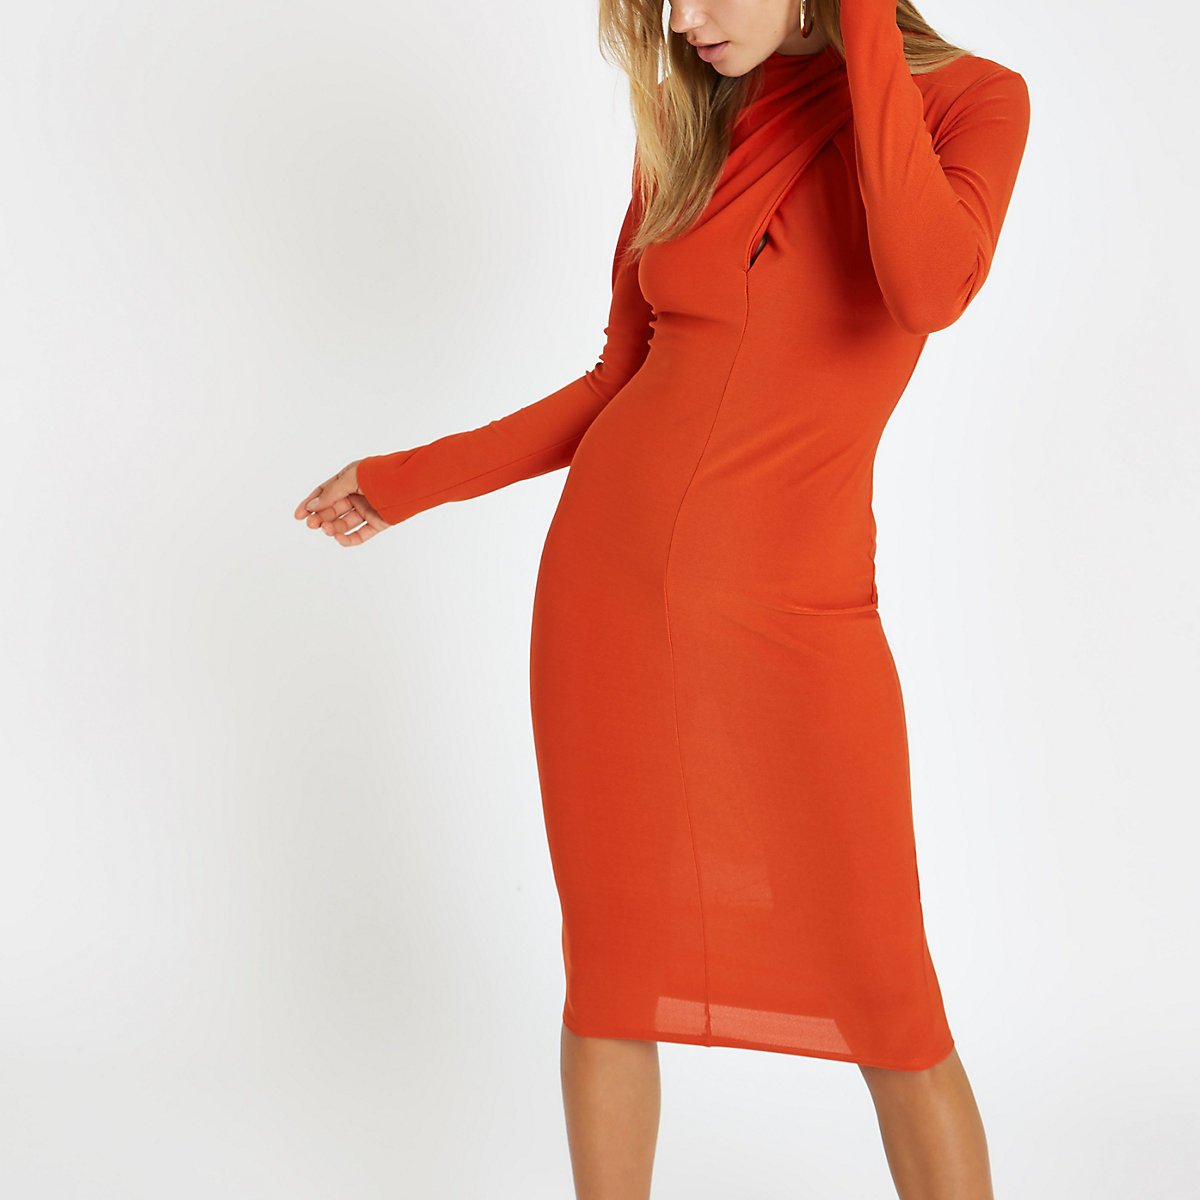 2c860369bf2 Orange wrap neck bodycon mini dress - Bodycon Dresses - Dresses - women